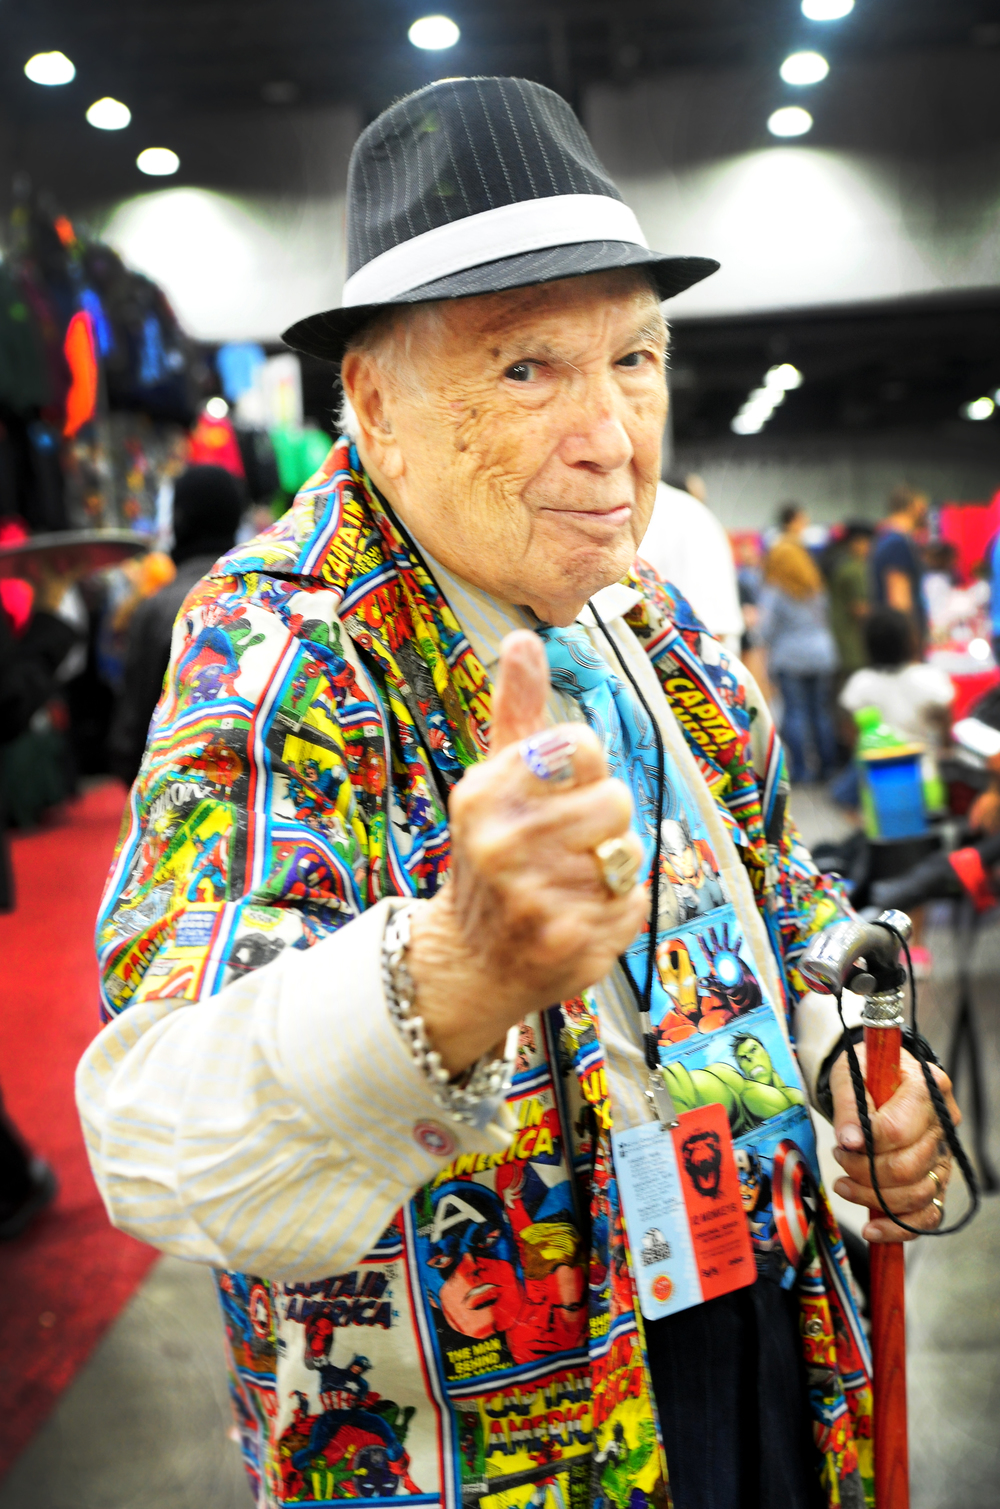 Marvel Comics artist Allen Bellman is pictured at the Cincinnati Comic Expo at the Duke Energy Center in downtown Cincinnati, Sept. 19, 2015. Bellman worked on the Captain America series, among many others, during the Golden Age of Comics.